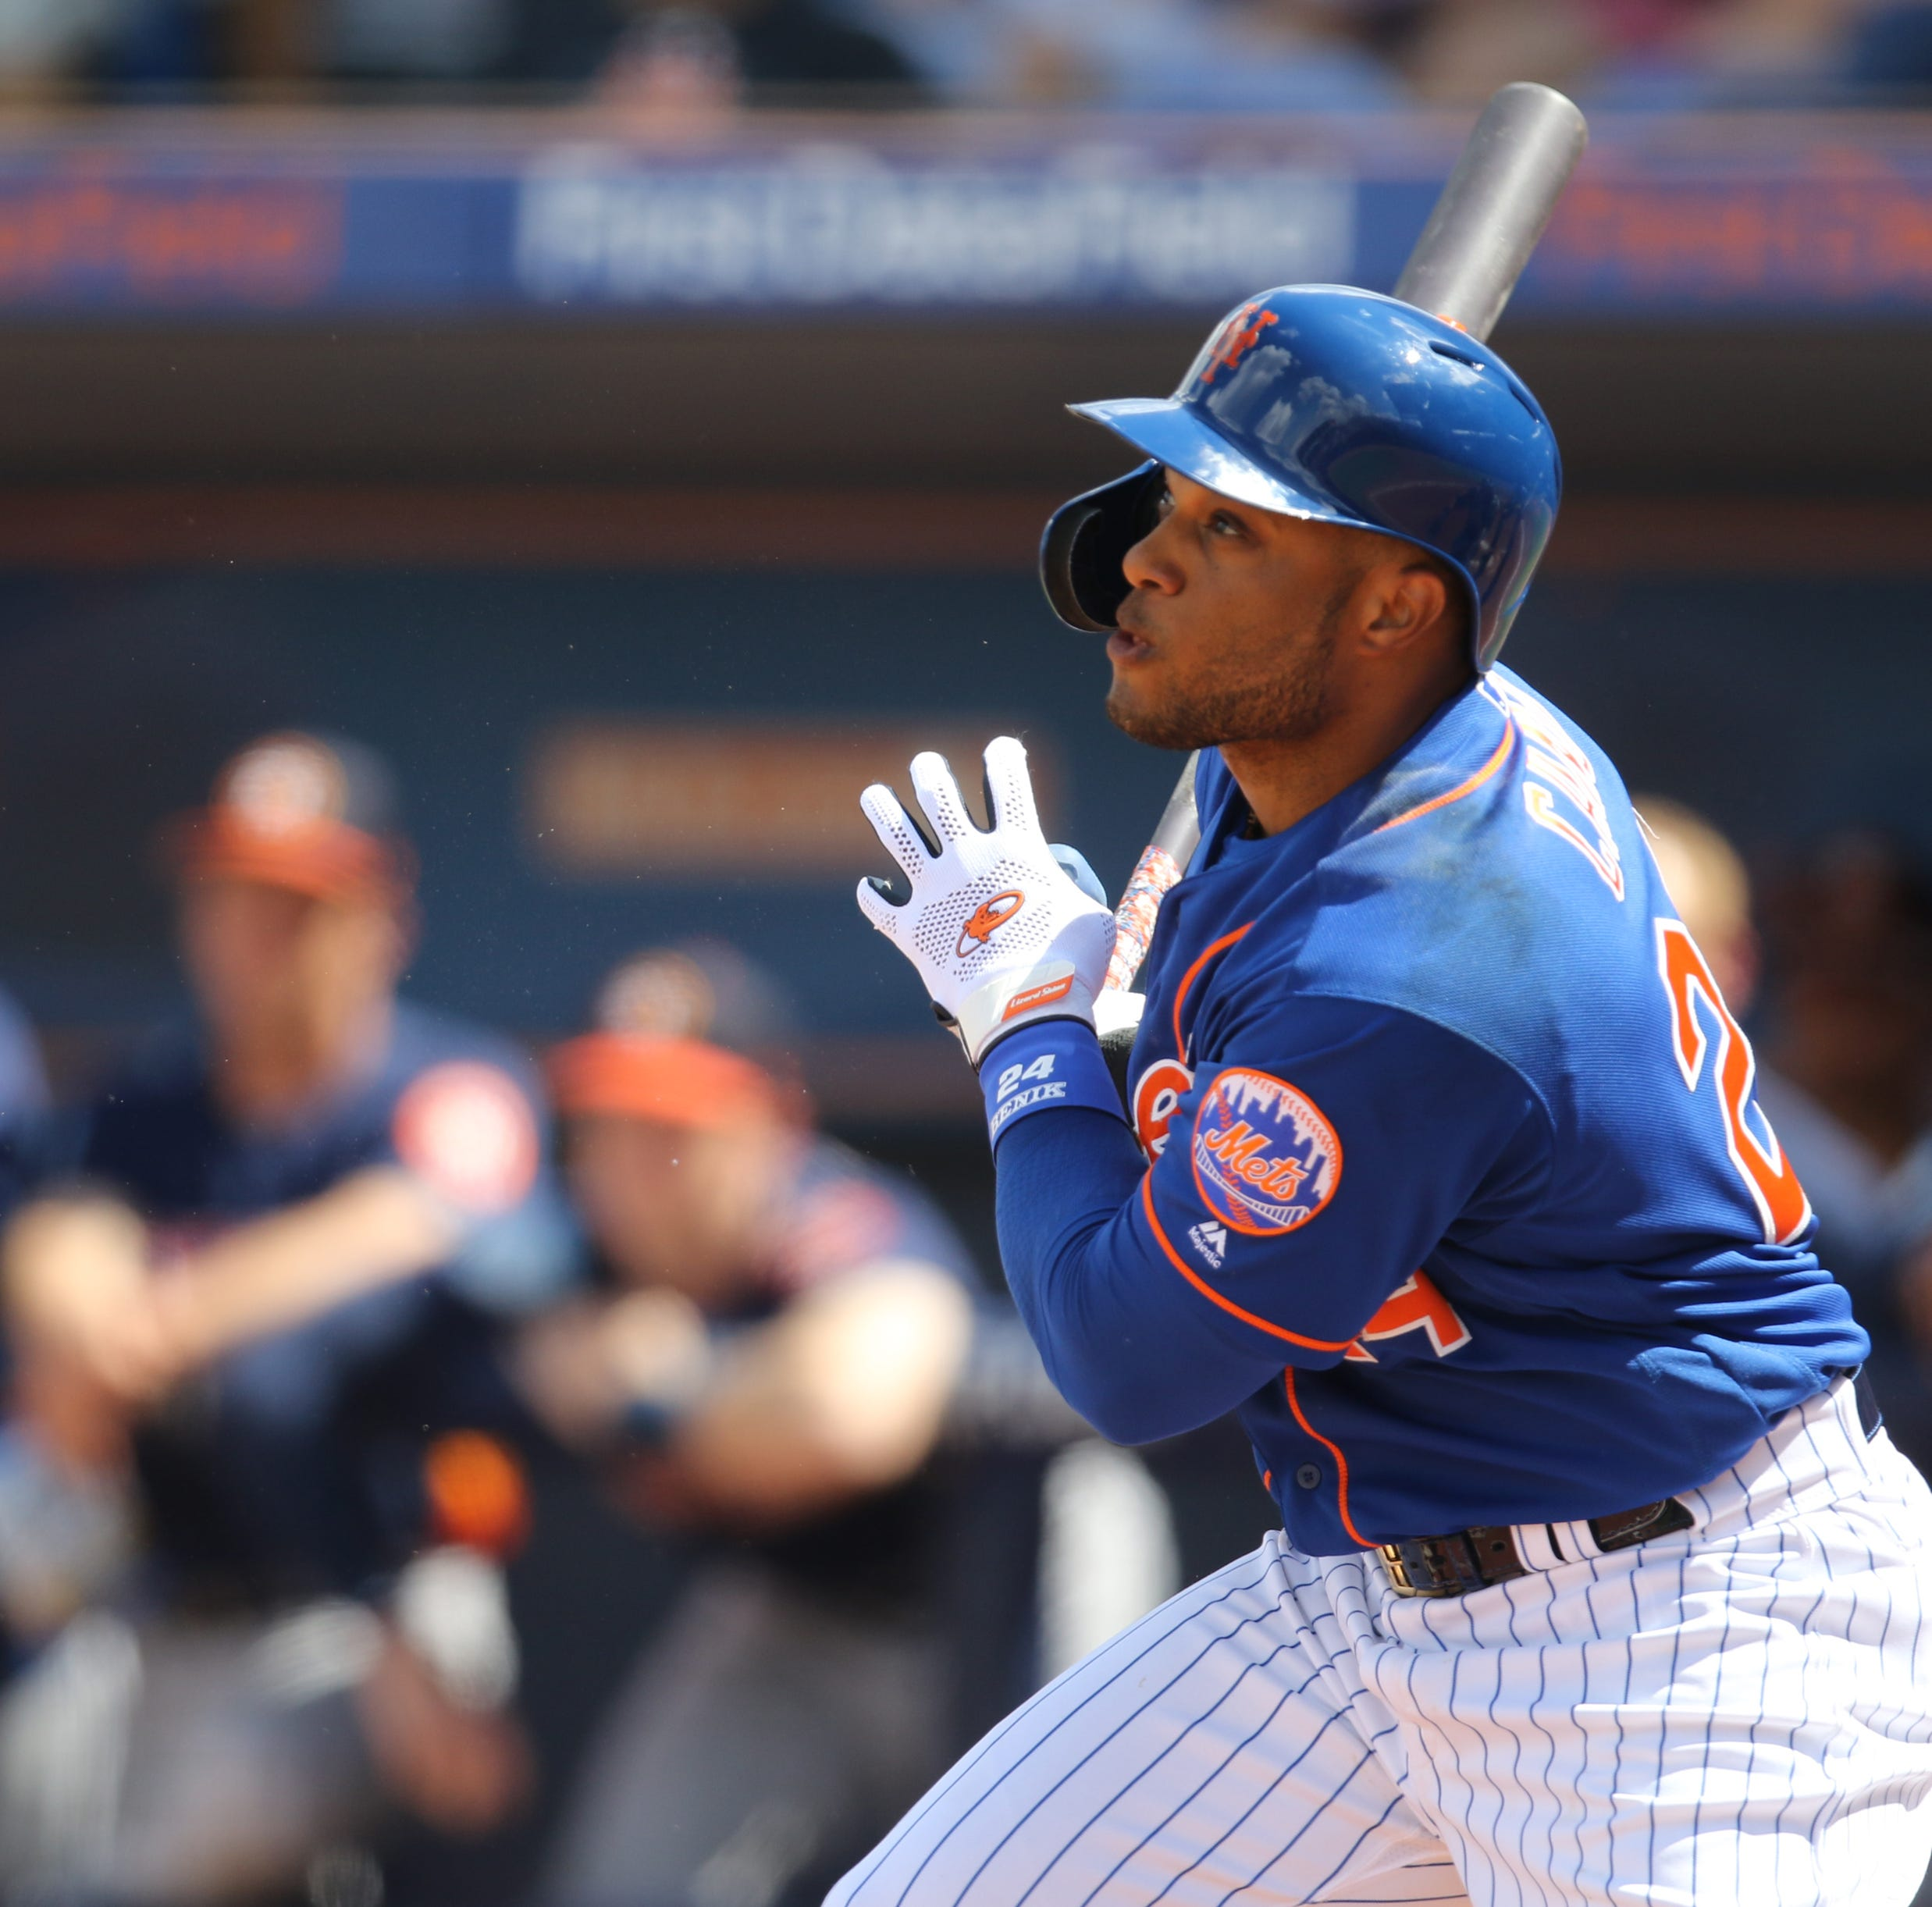 Mets have received strong performances from youngsters trying to make the team